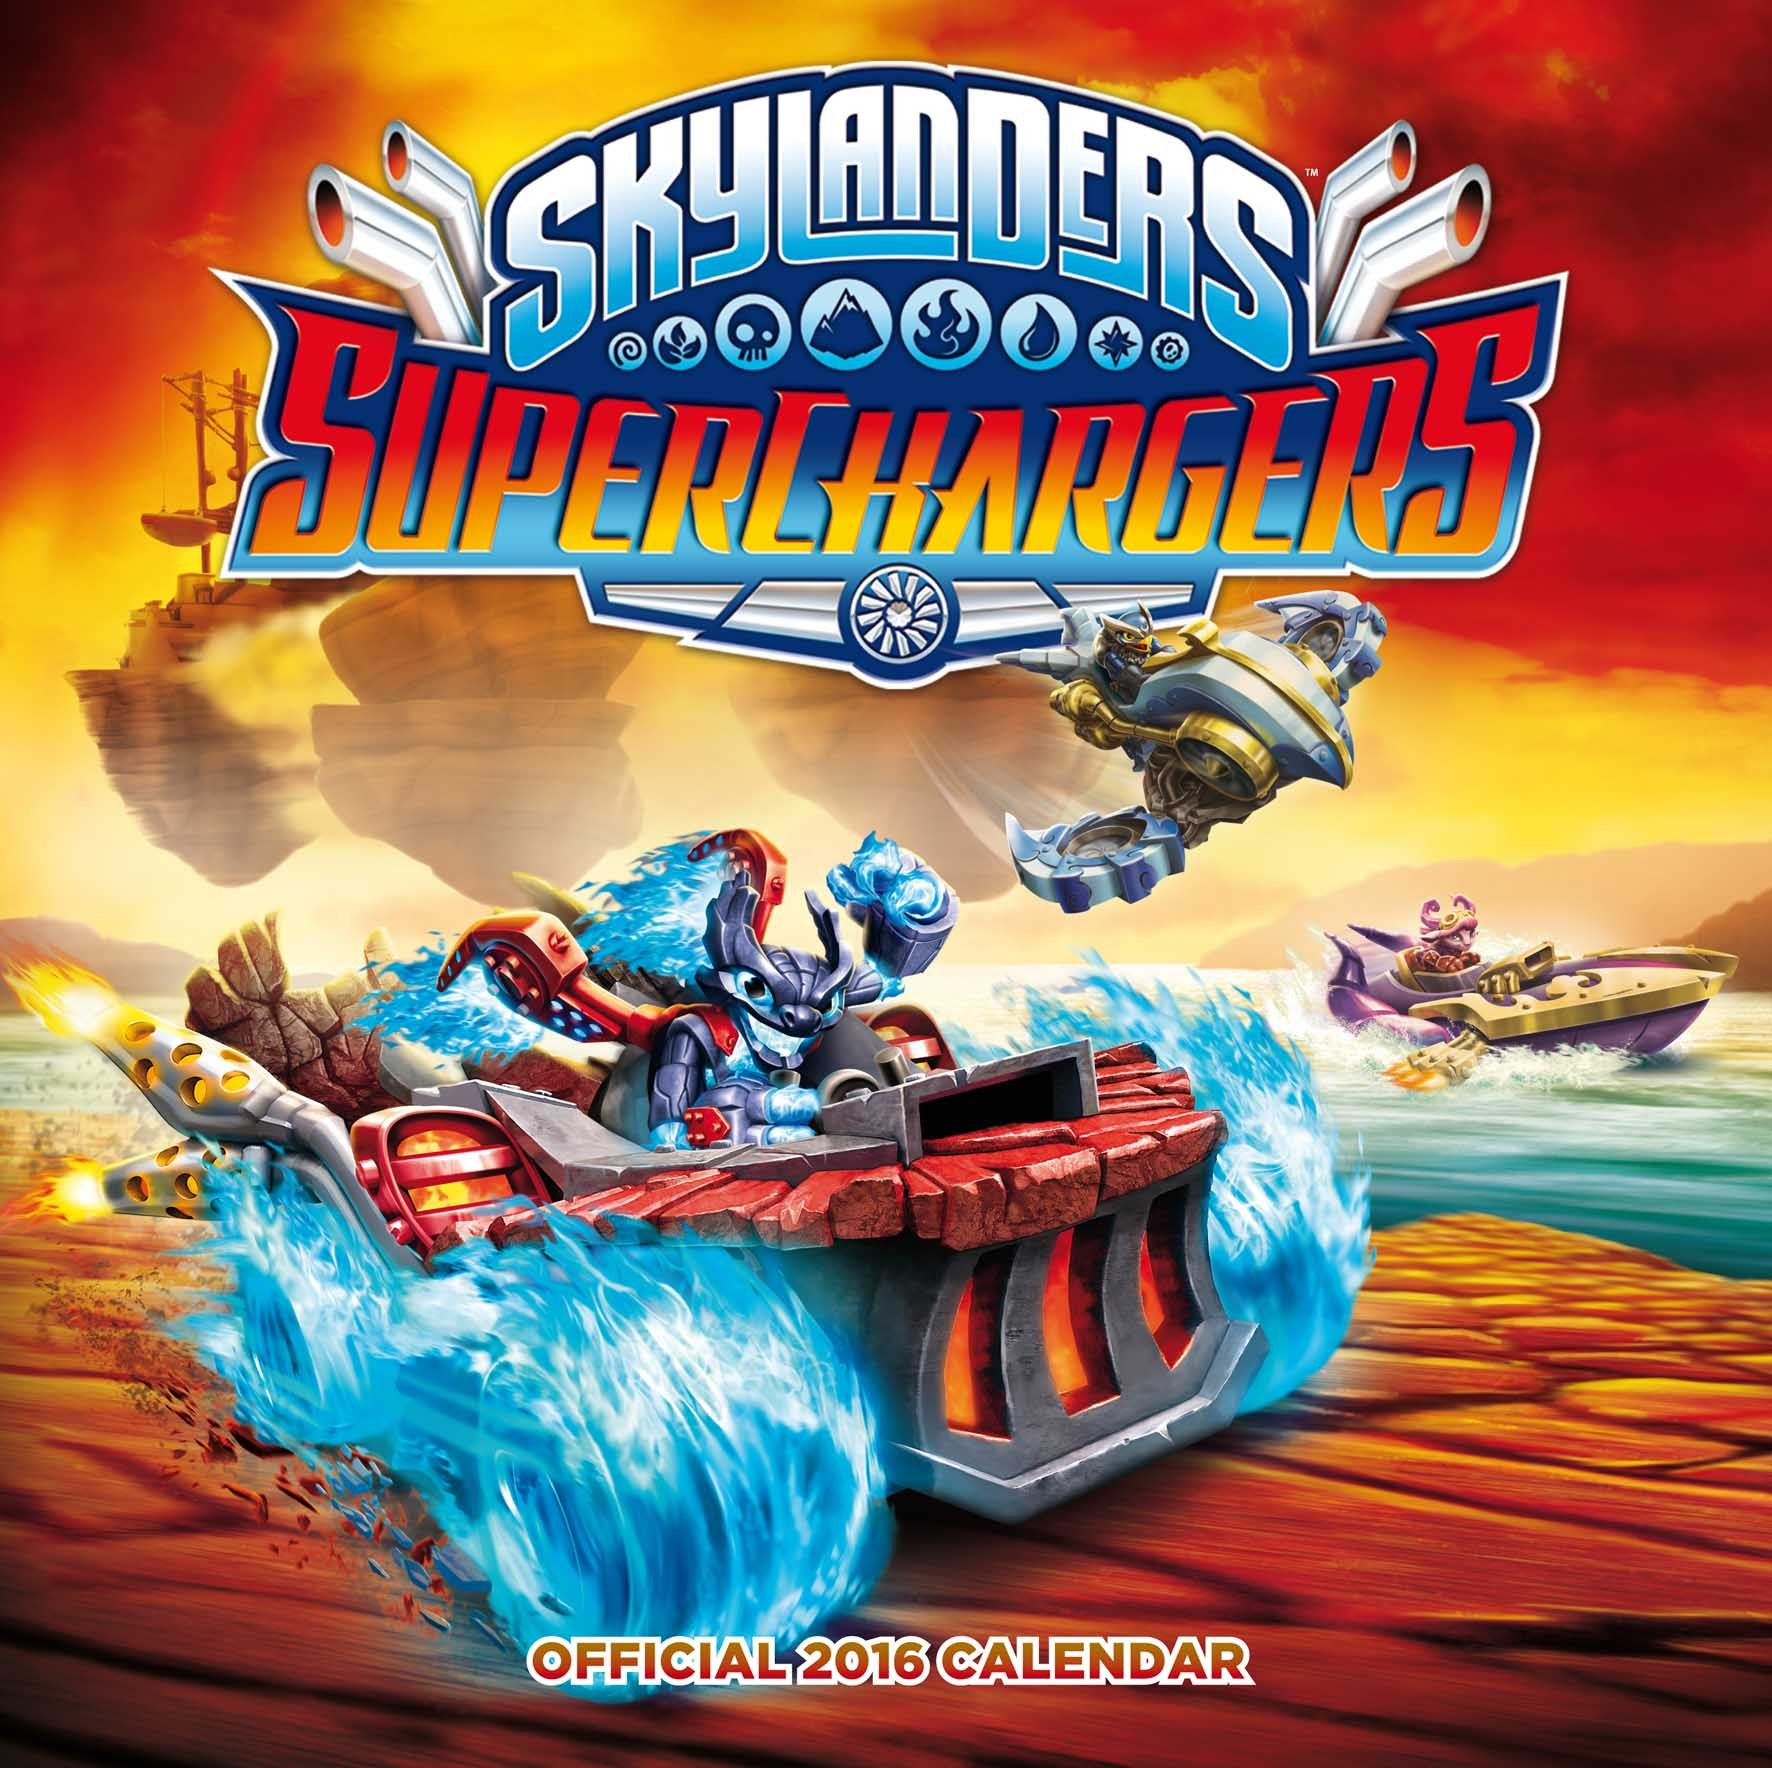 The Official Skylanders 2016 Square Calendar (Calendar 2016)